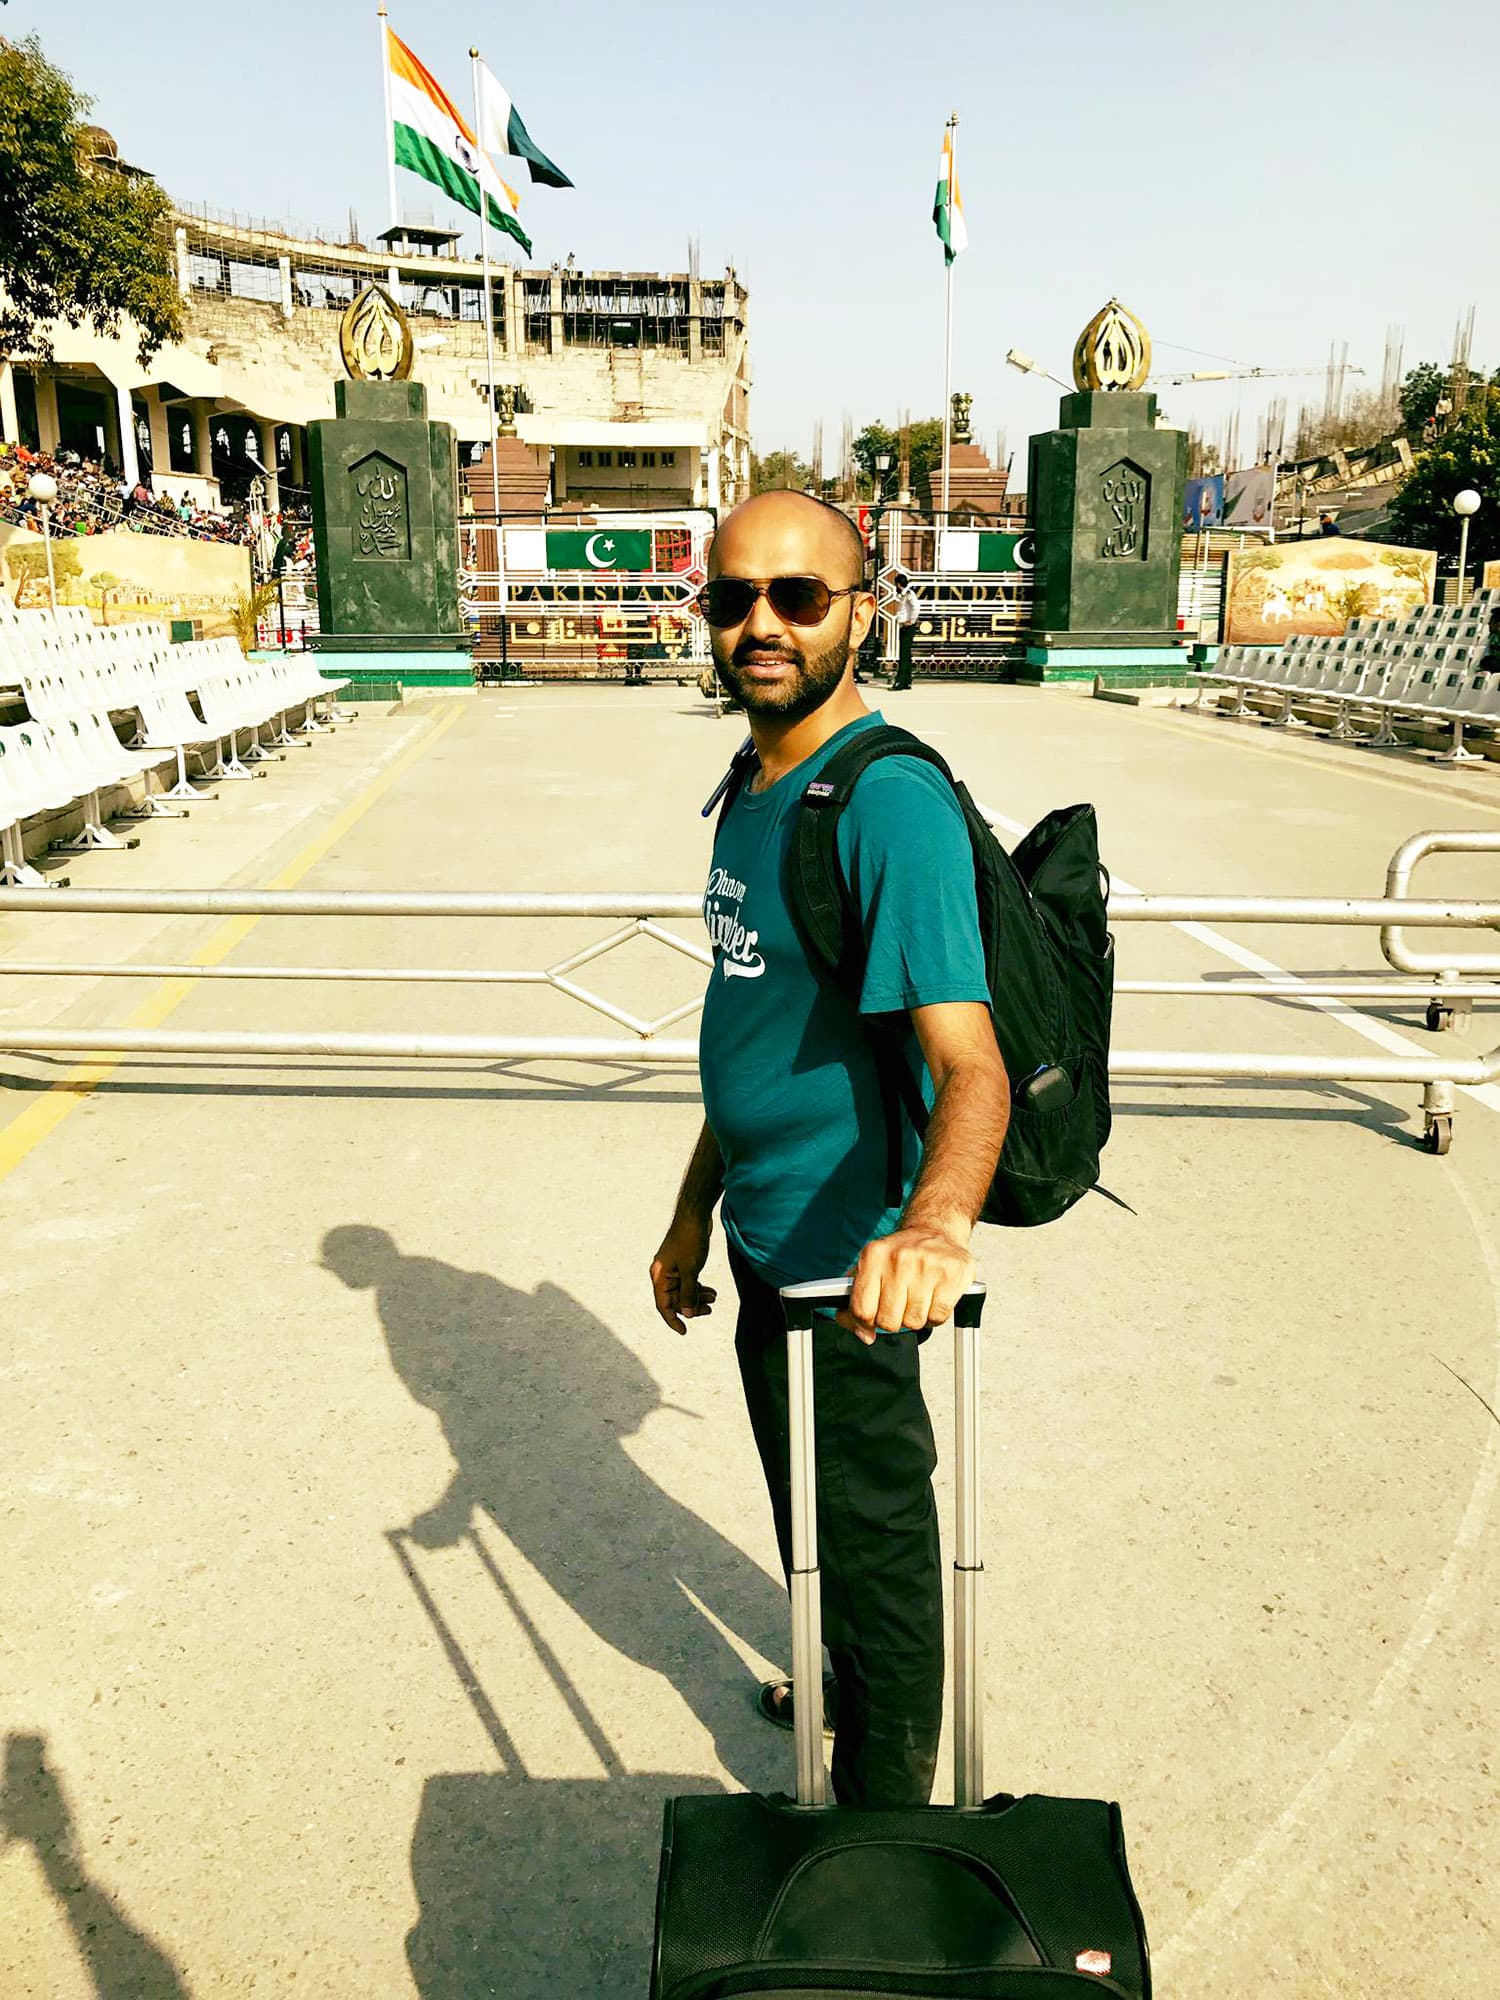 The feeling was indescribable when I first set foot on the Pakistani side of the Wagah border.